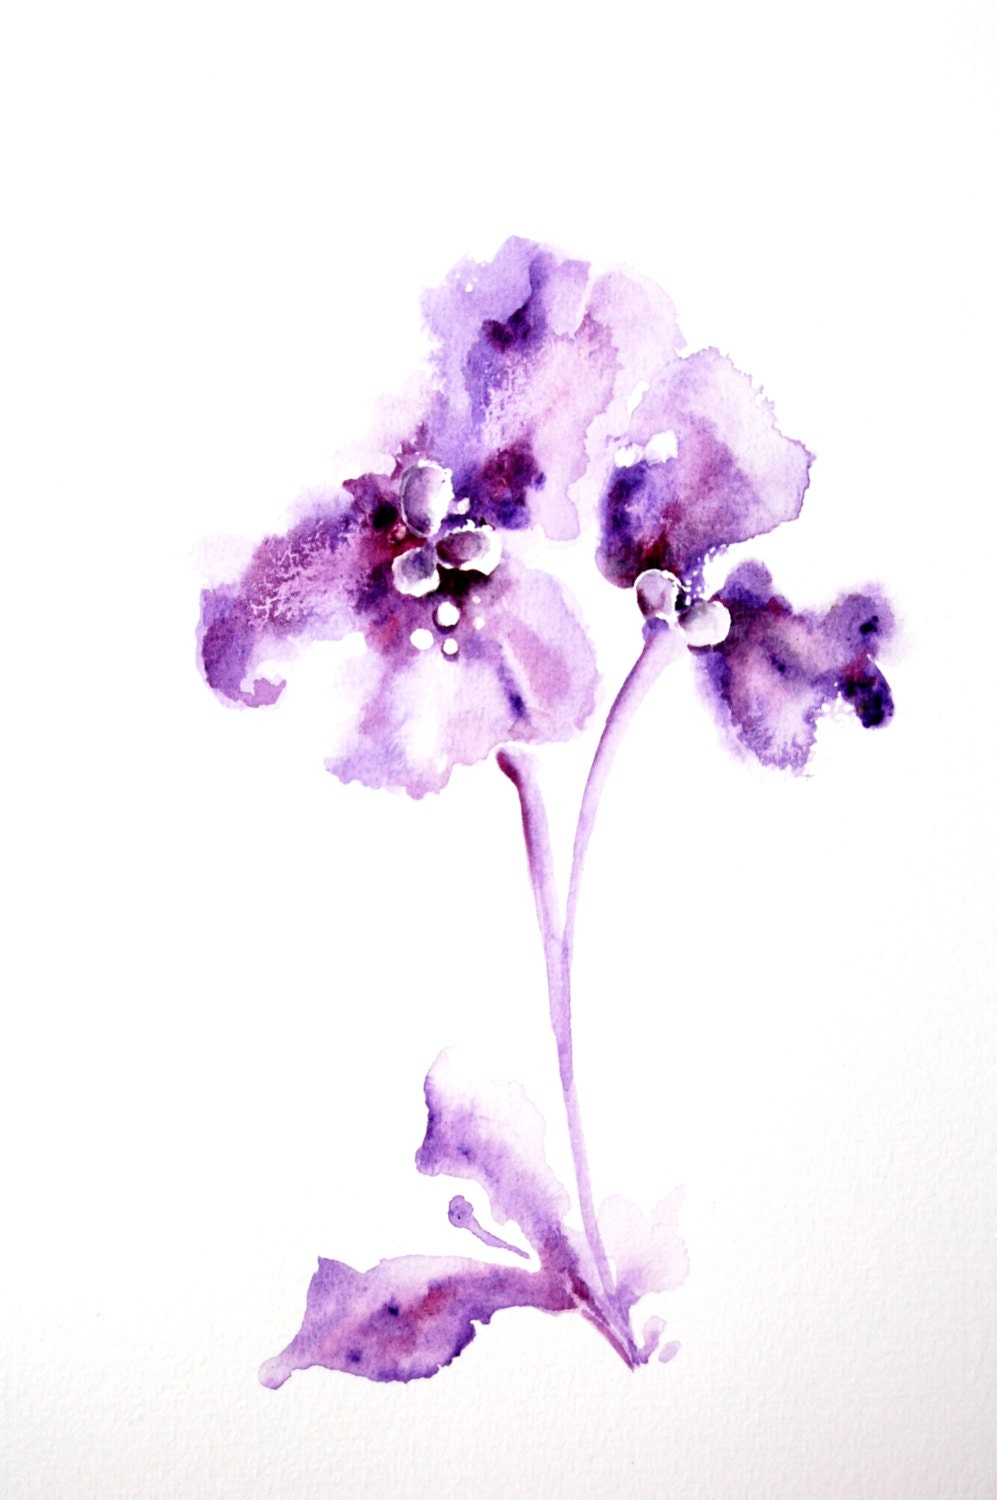 Original Watercolor Painting of Abstract Minimalist Flower. Purple Minimalist Floral Wall Art. - CanotStop